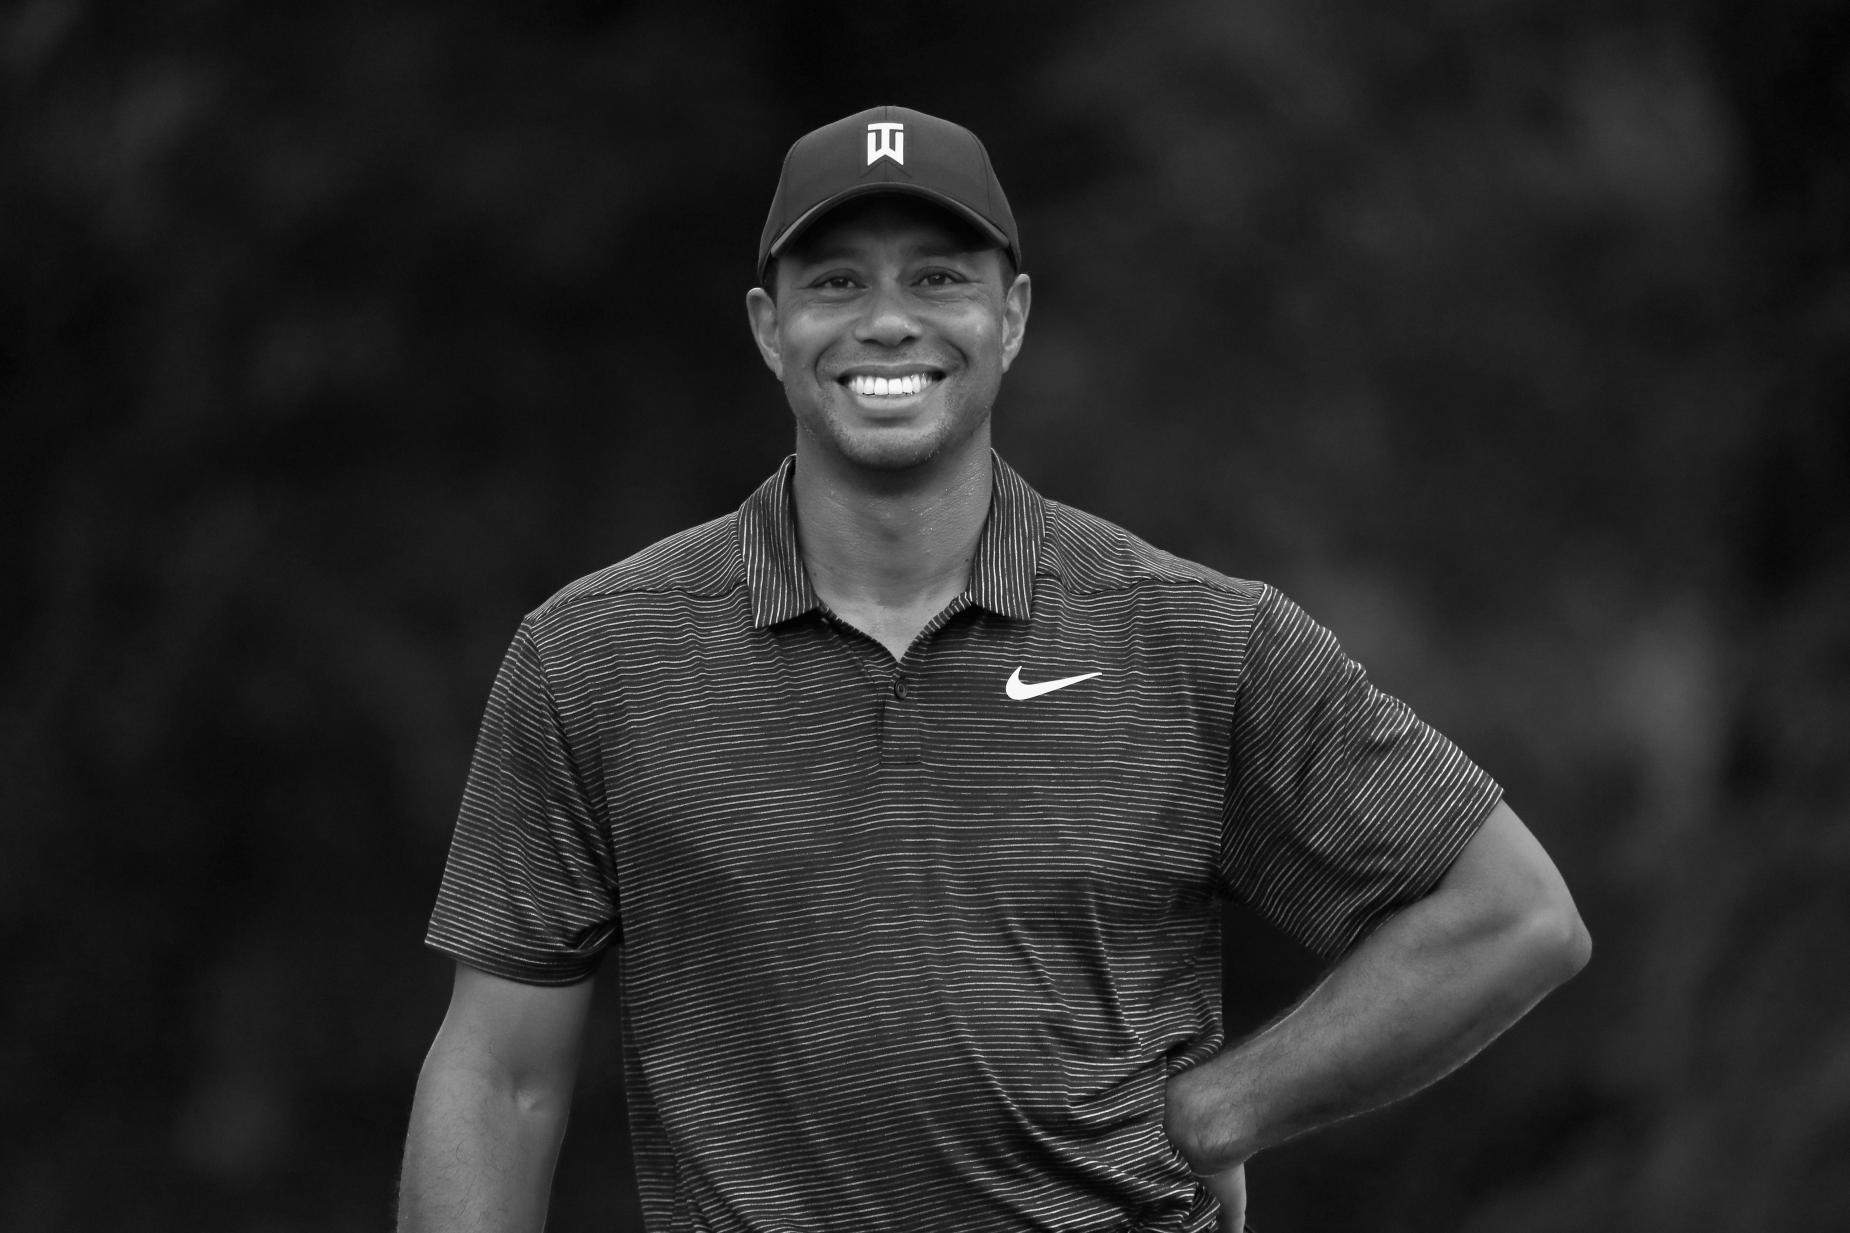 tiger-woods-newsmakers-bw-portrait.jpg